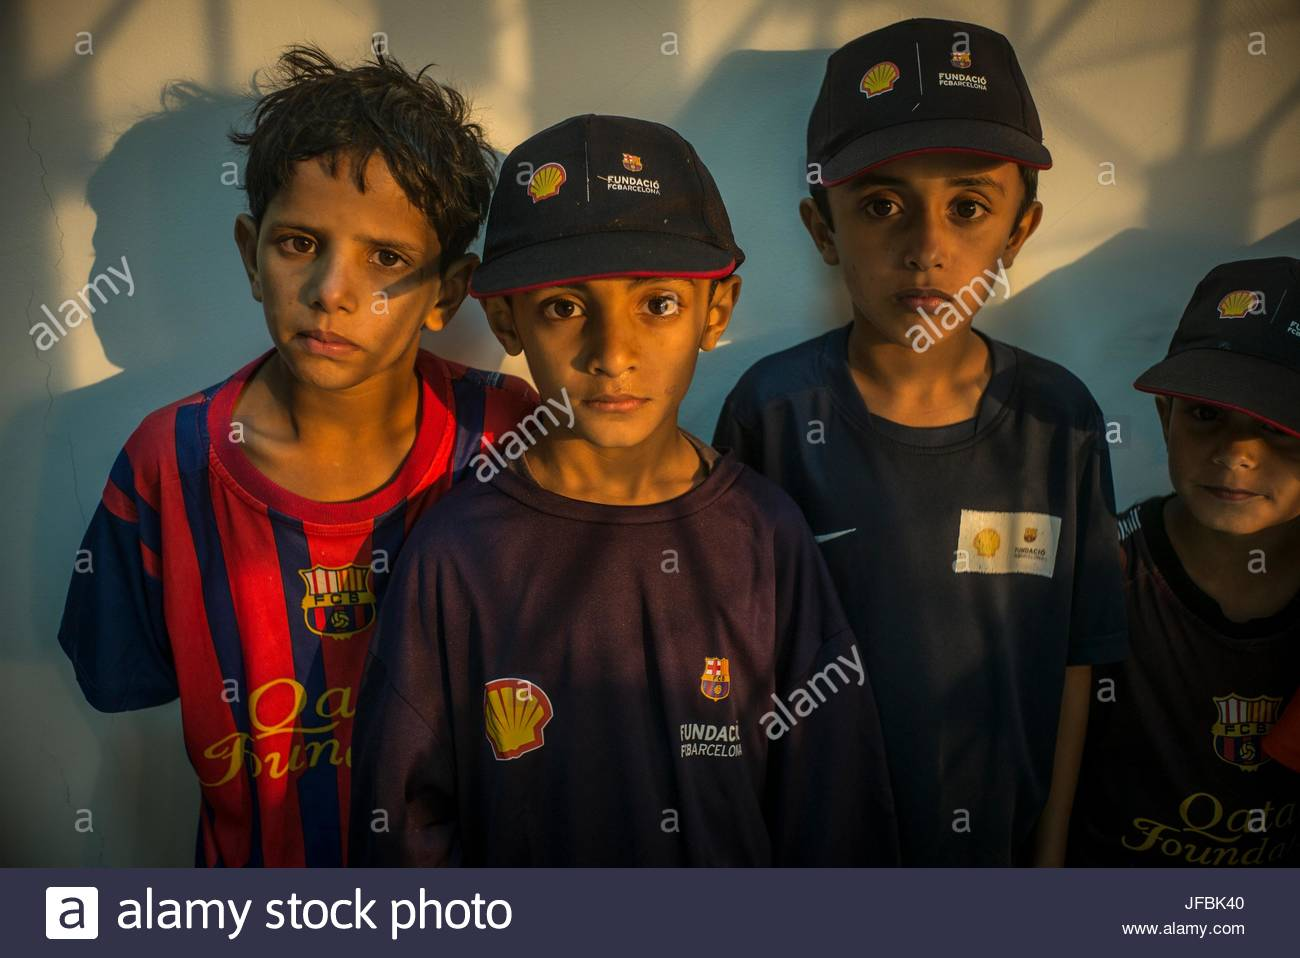 Young soccer playing boys from Bidiyah after a FutbolNet session. - Stock Image